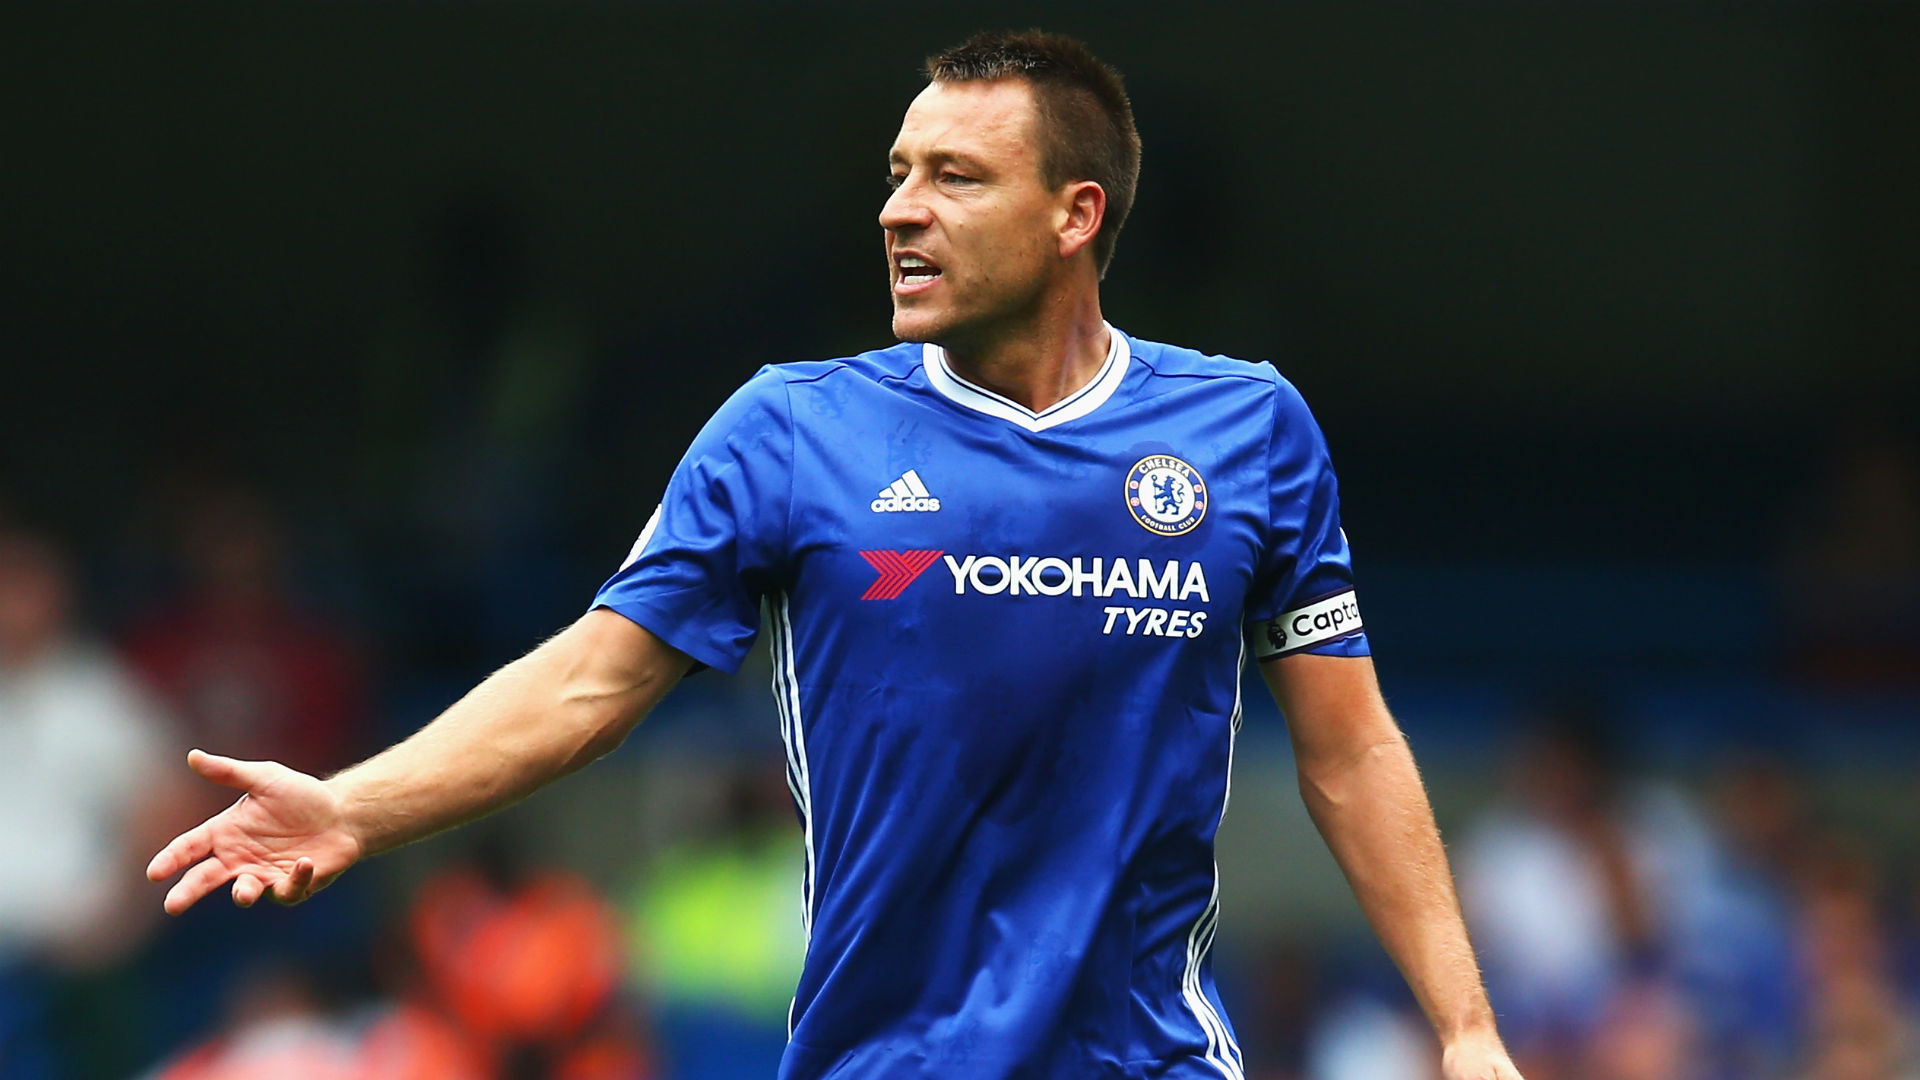 [Image: john-terry-premier-league_1vopnj29ahxw51...-415087025]